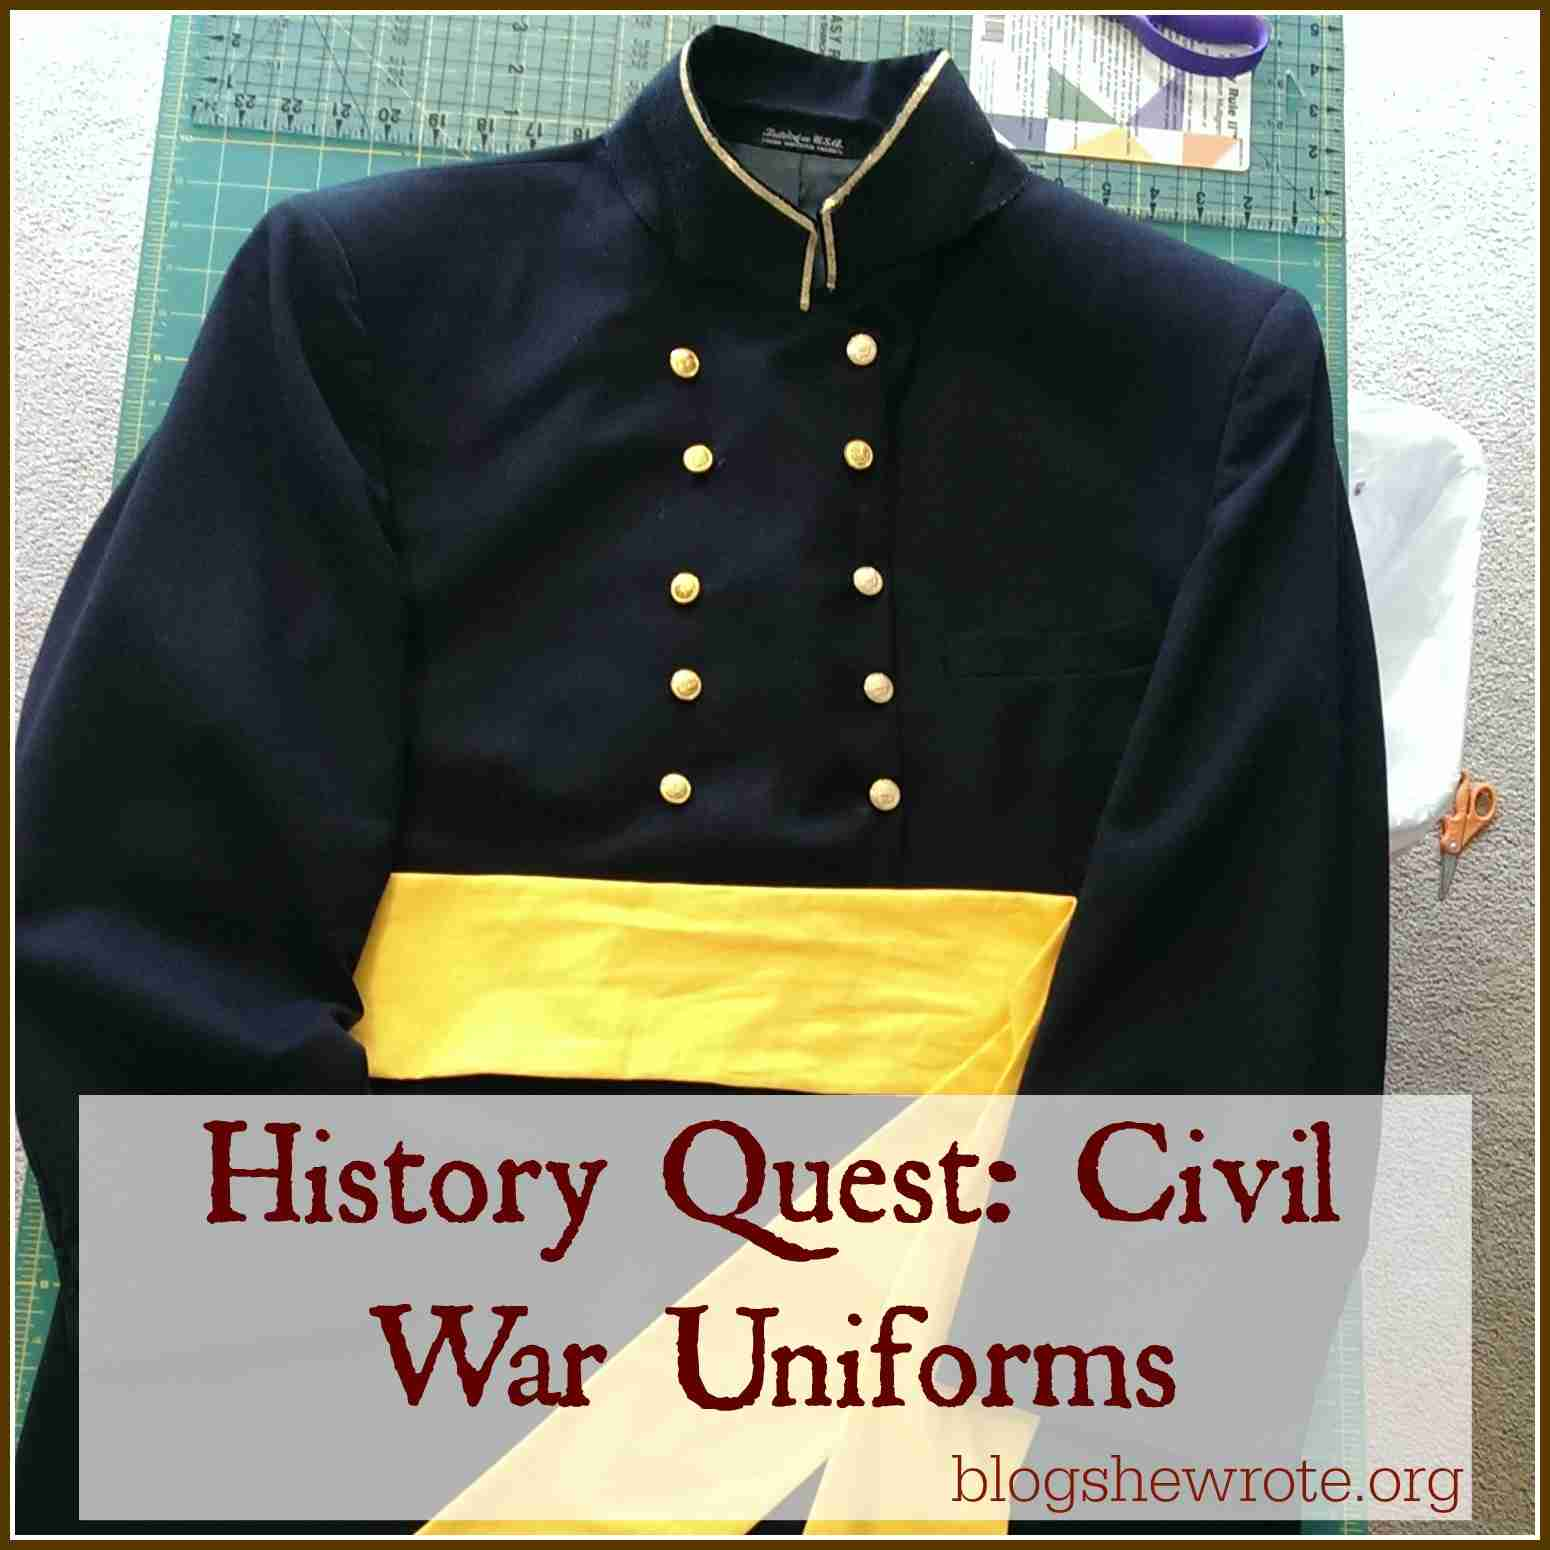 History Quest- Civil War Uniforms